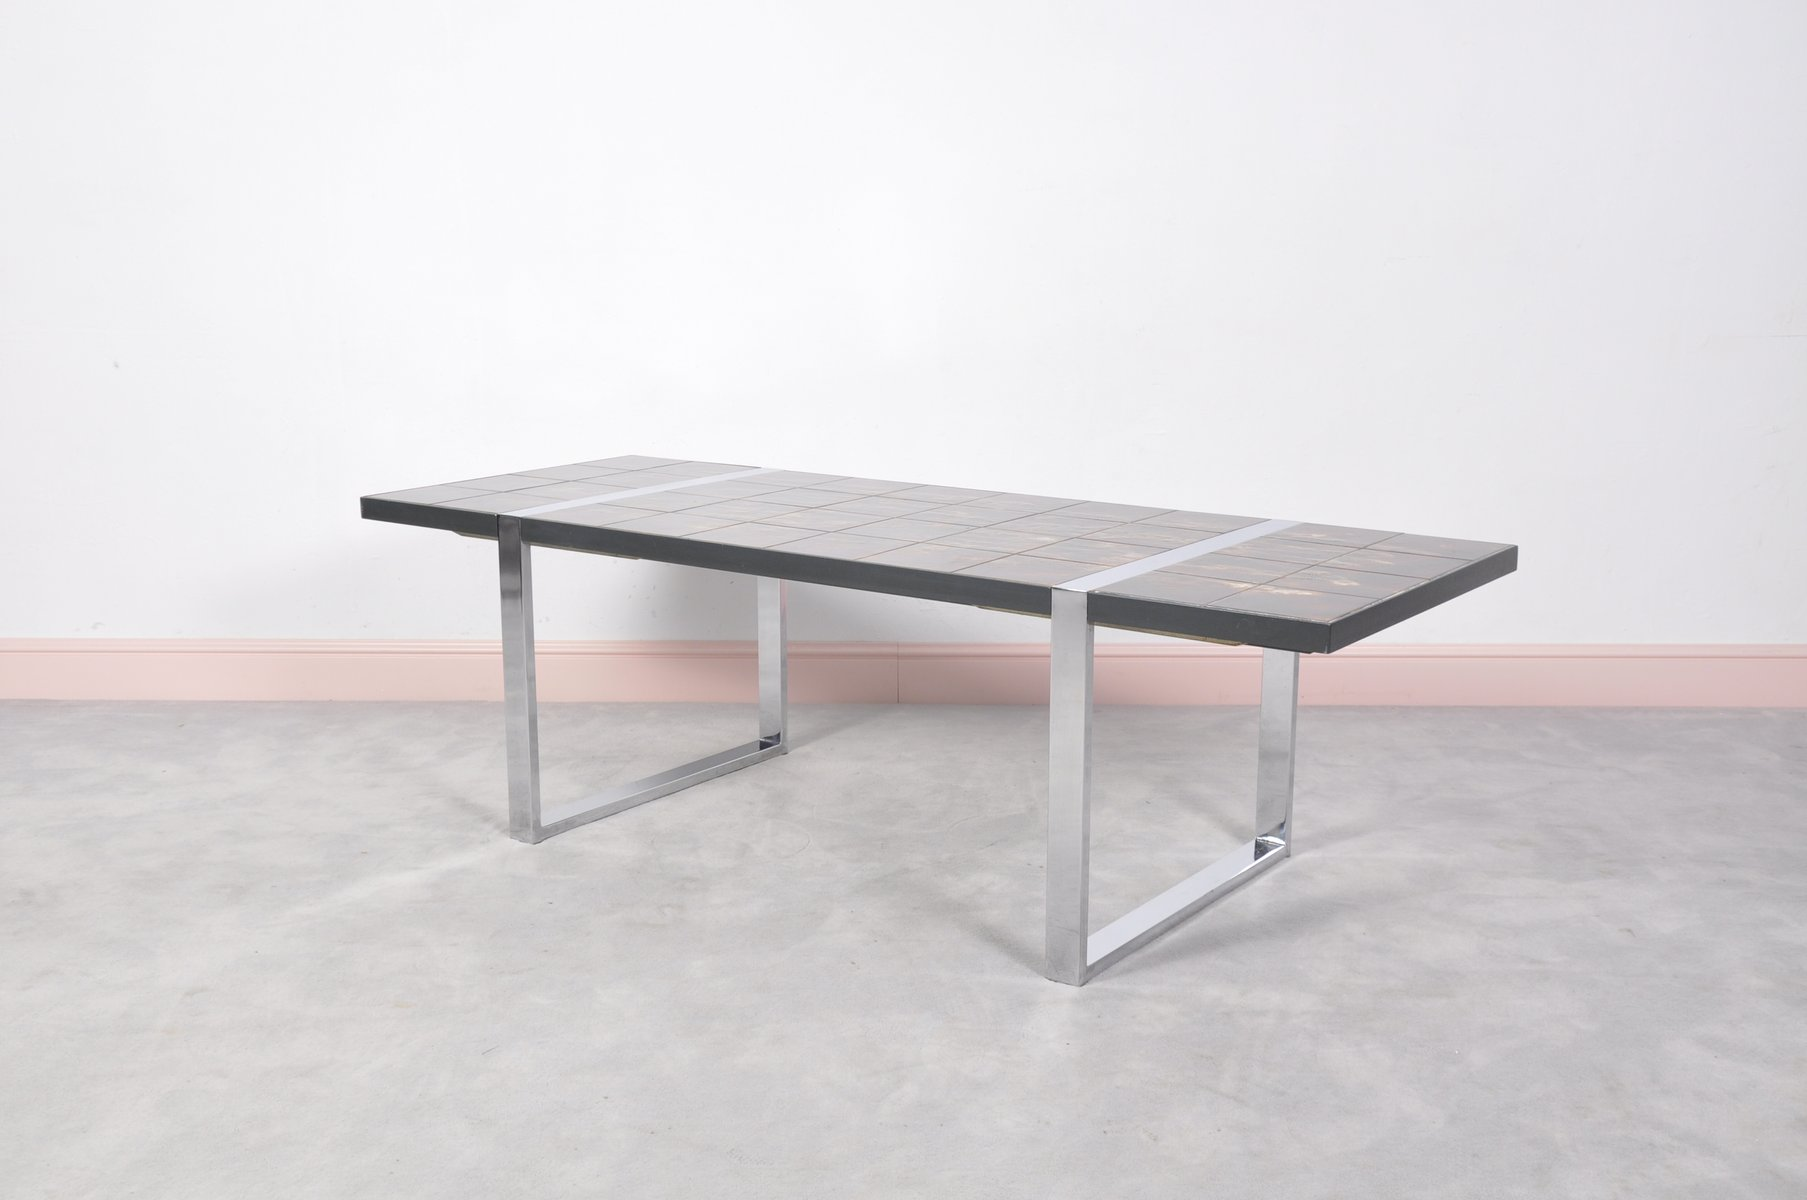 Table basse avec plateau en c ramique par julien belarti - Table ceramique italie ...